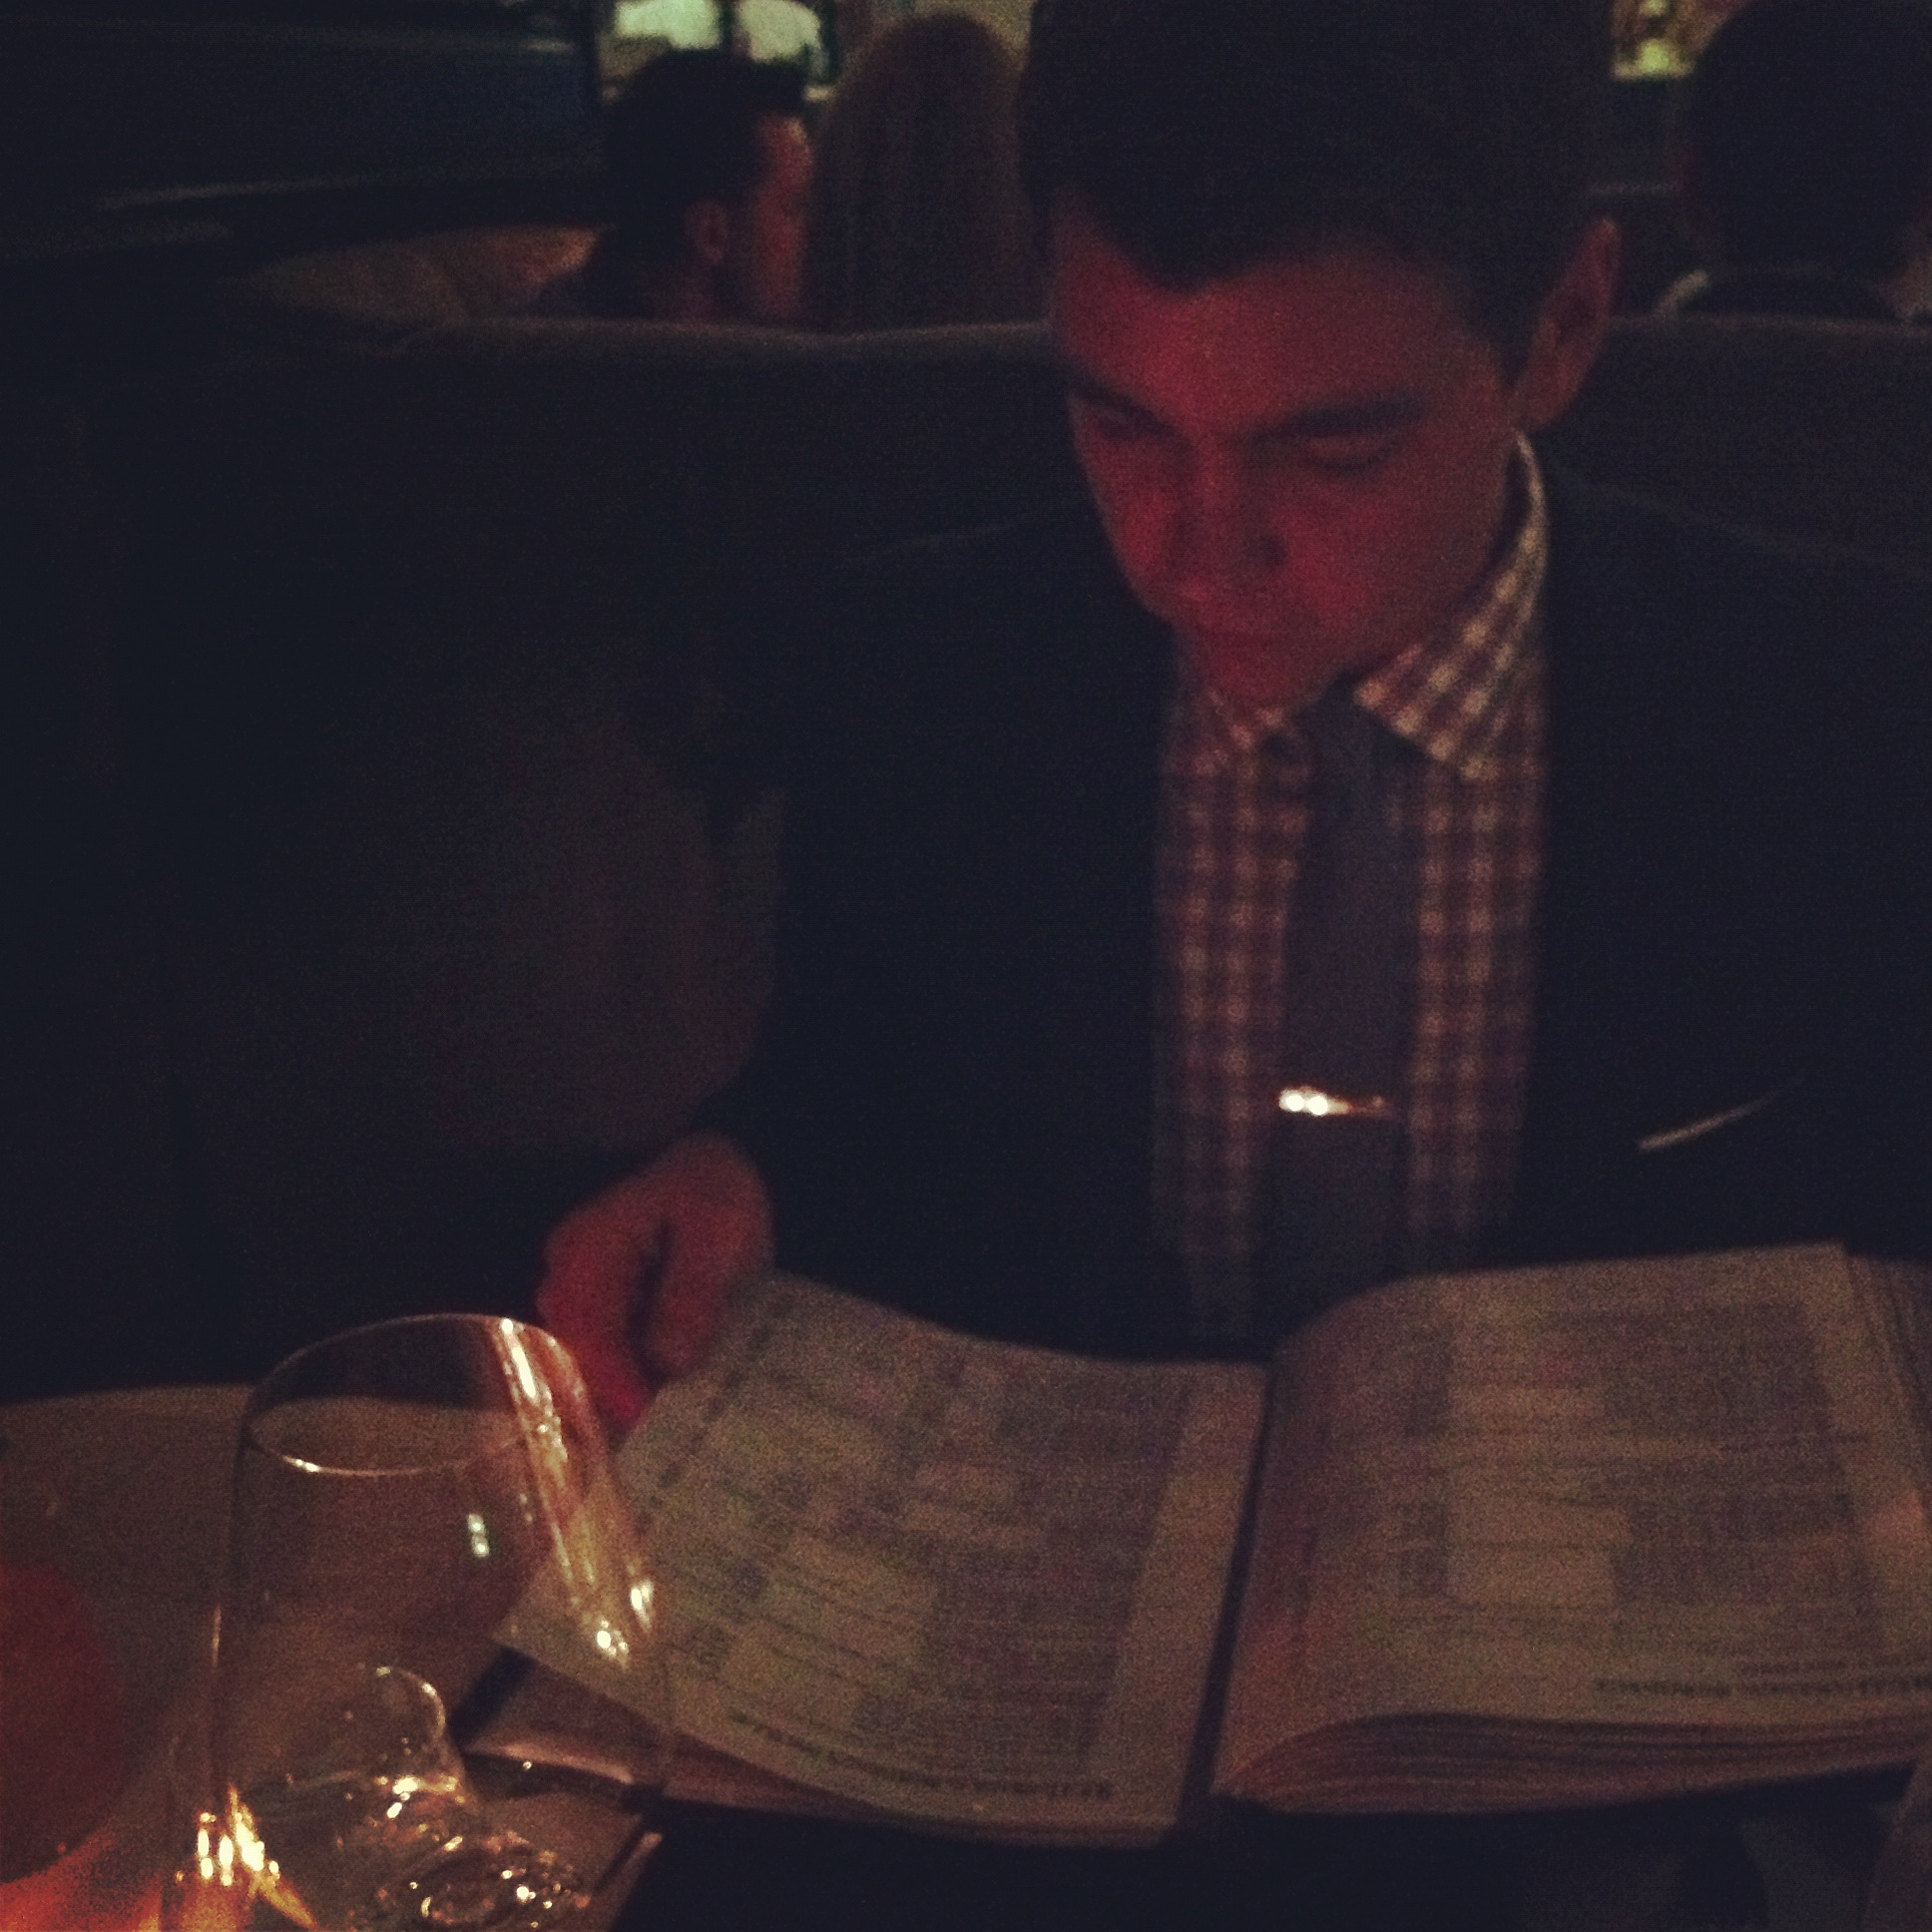 Getting deep into the textbook wine list at Harbour 60 in Toronto. Bad place to take me on a date...